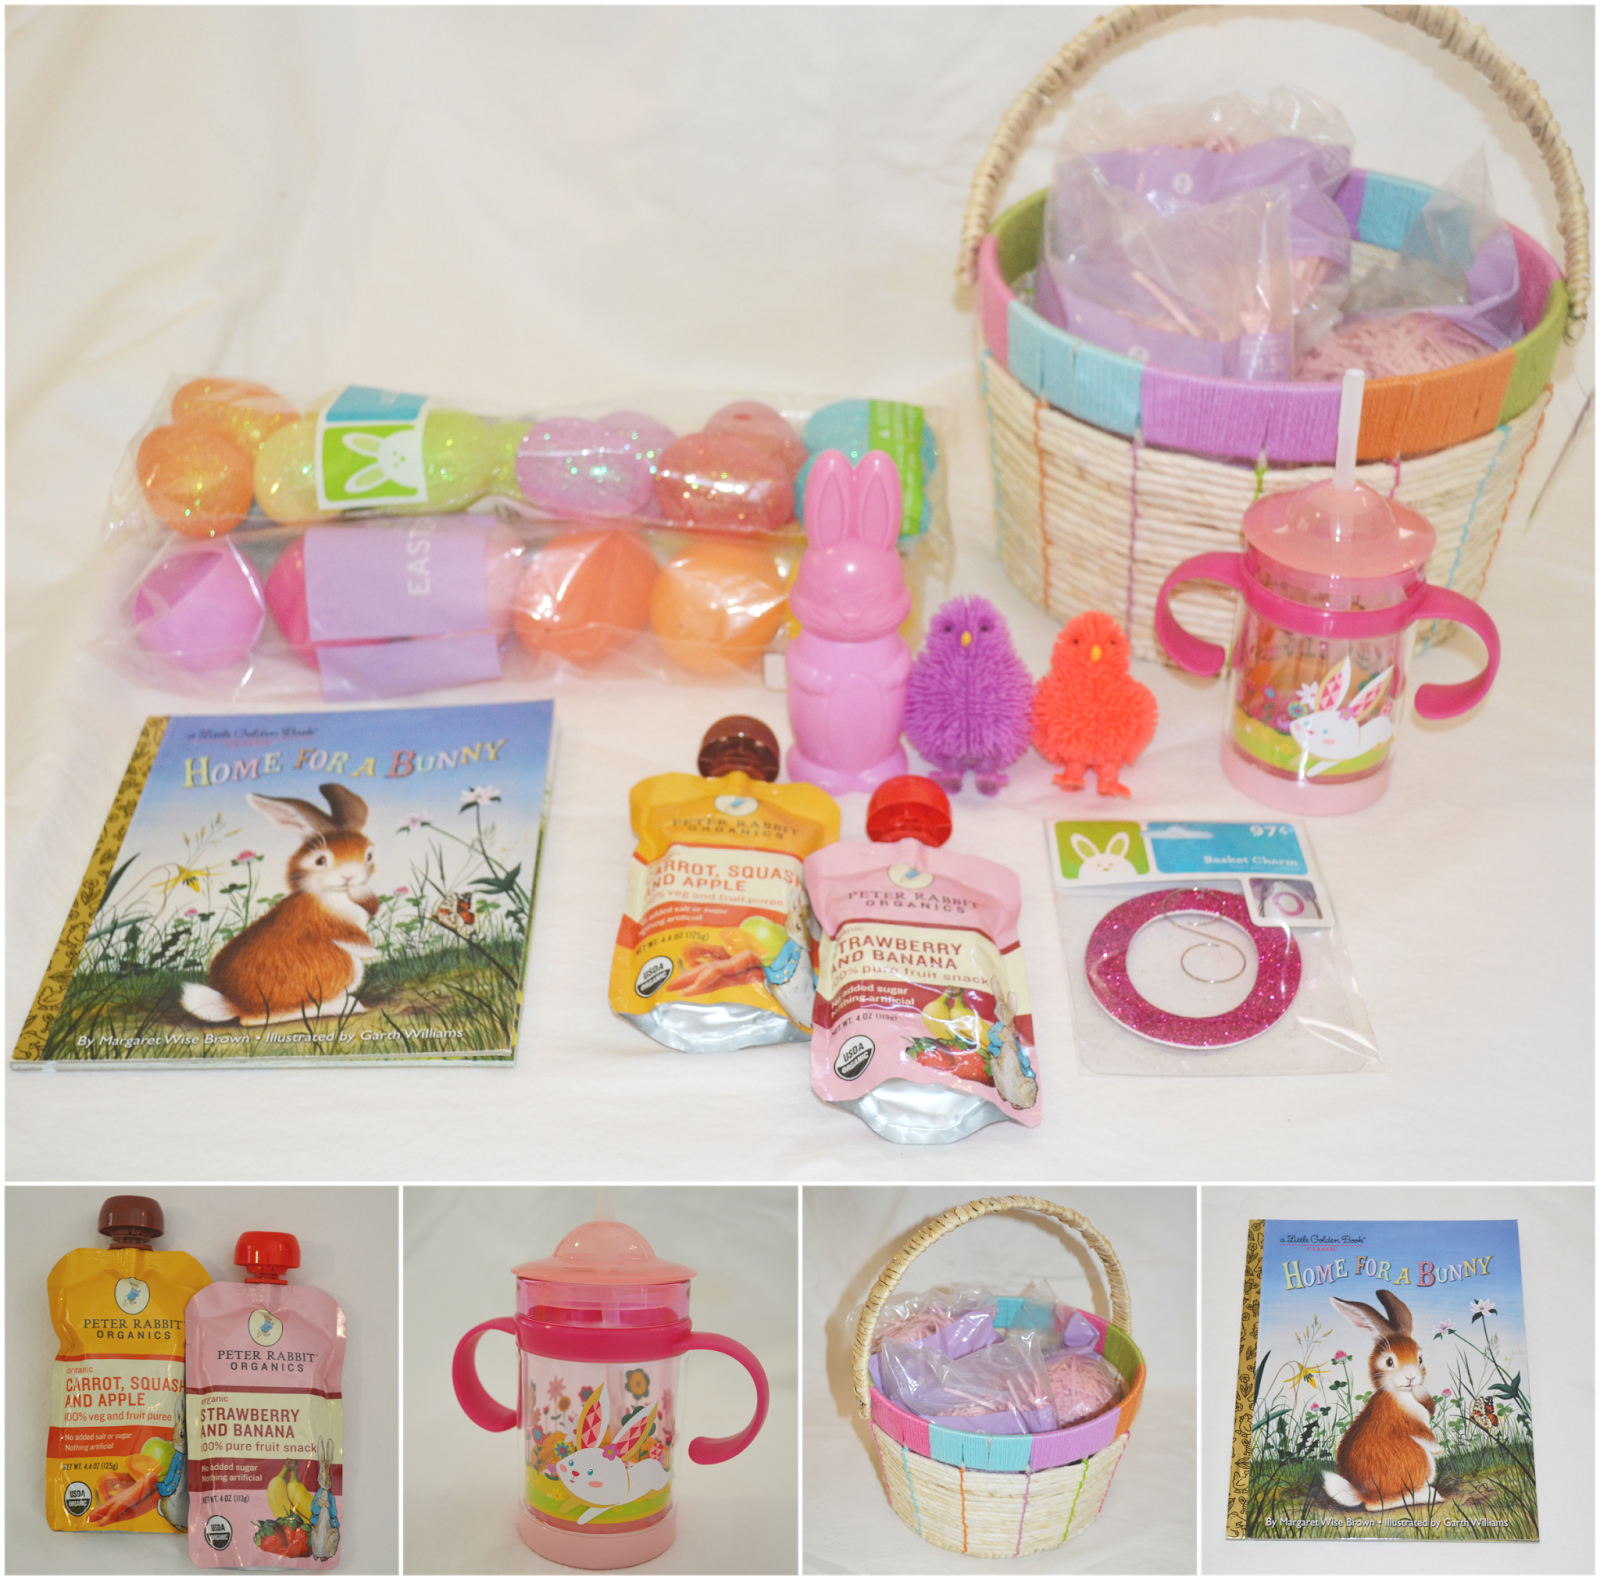 Easter basket for baby girl first easter basket ideas for baby girl dette cakes blog negle Image collections